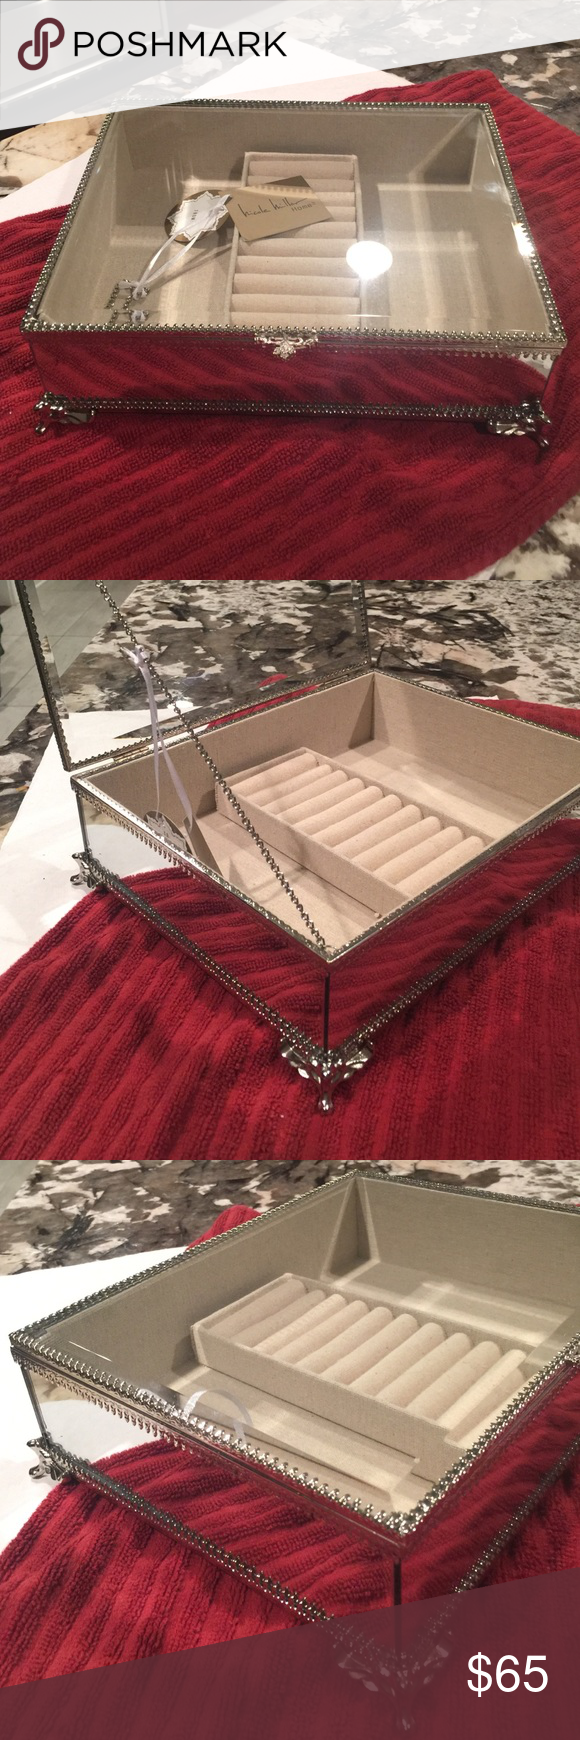 Nicole Miller Jewelry Box Prepossessing Nwt Nicole Miller Mirrorglass Jewelry Box Mirrored Sides Glass Top Decorating Design